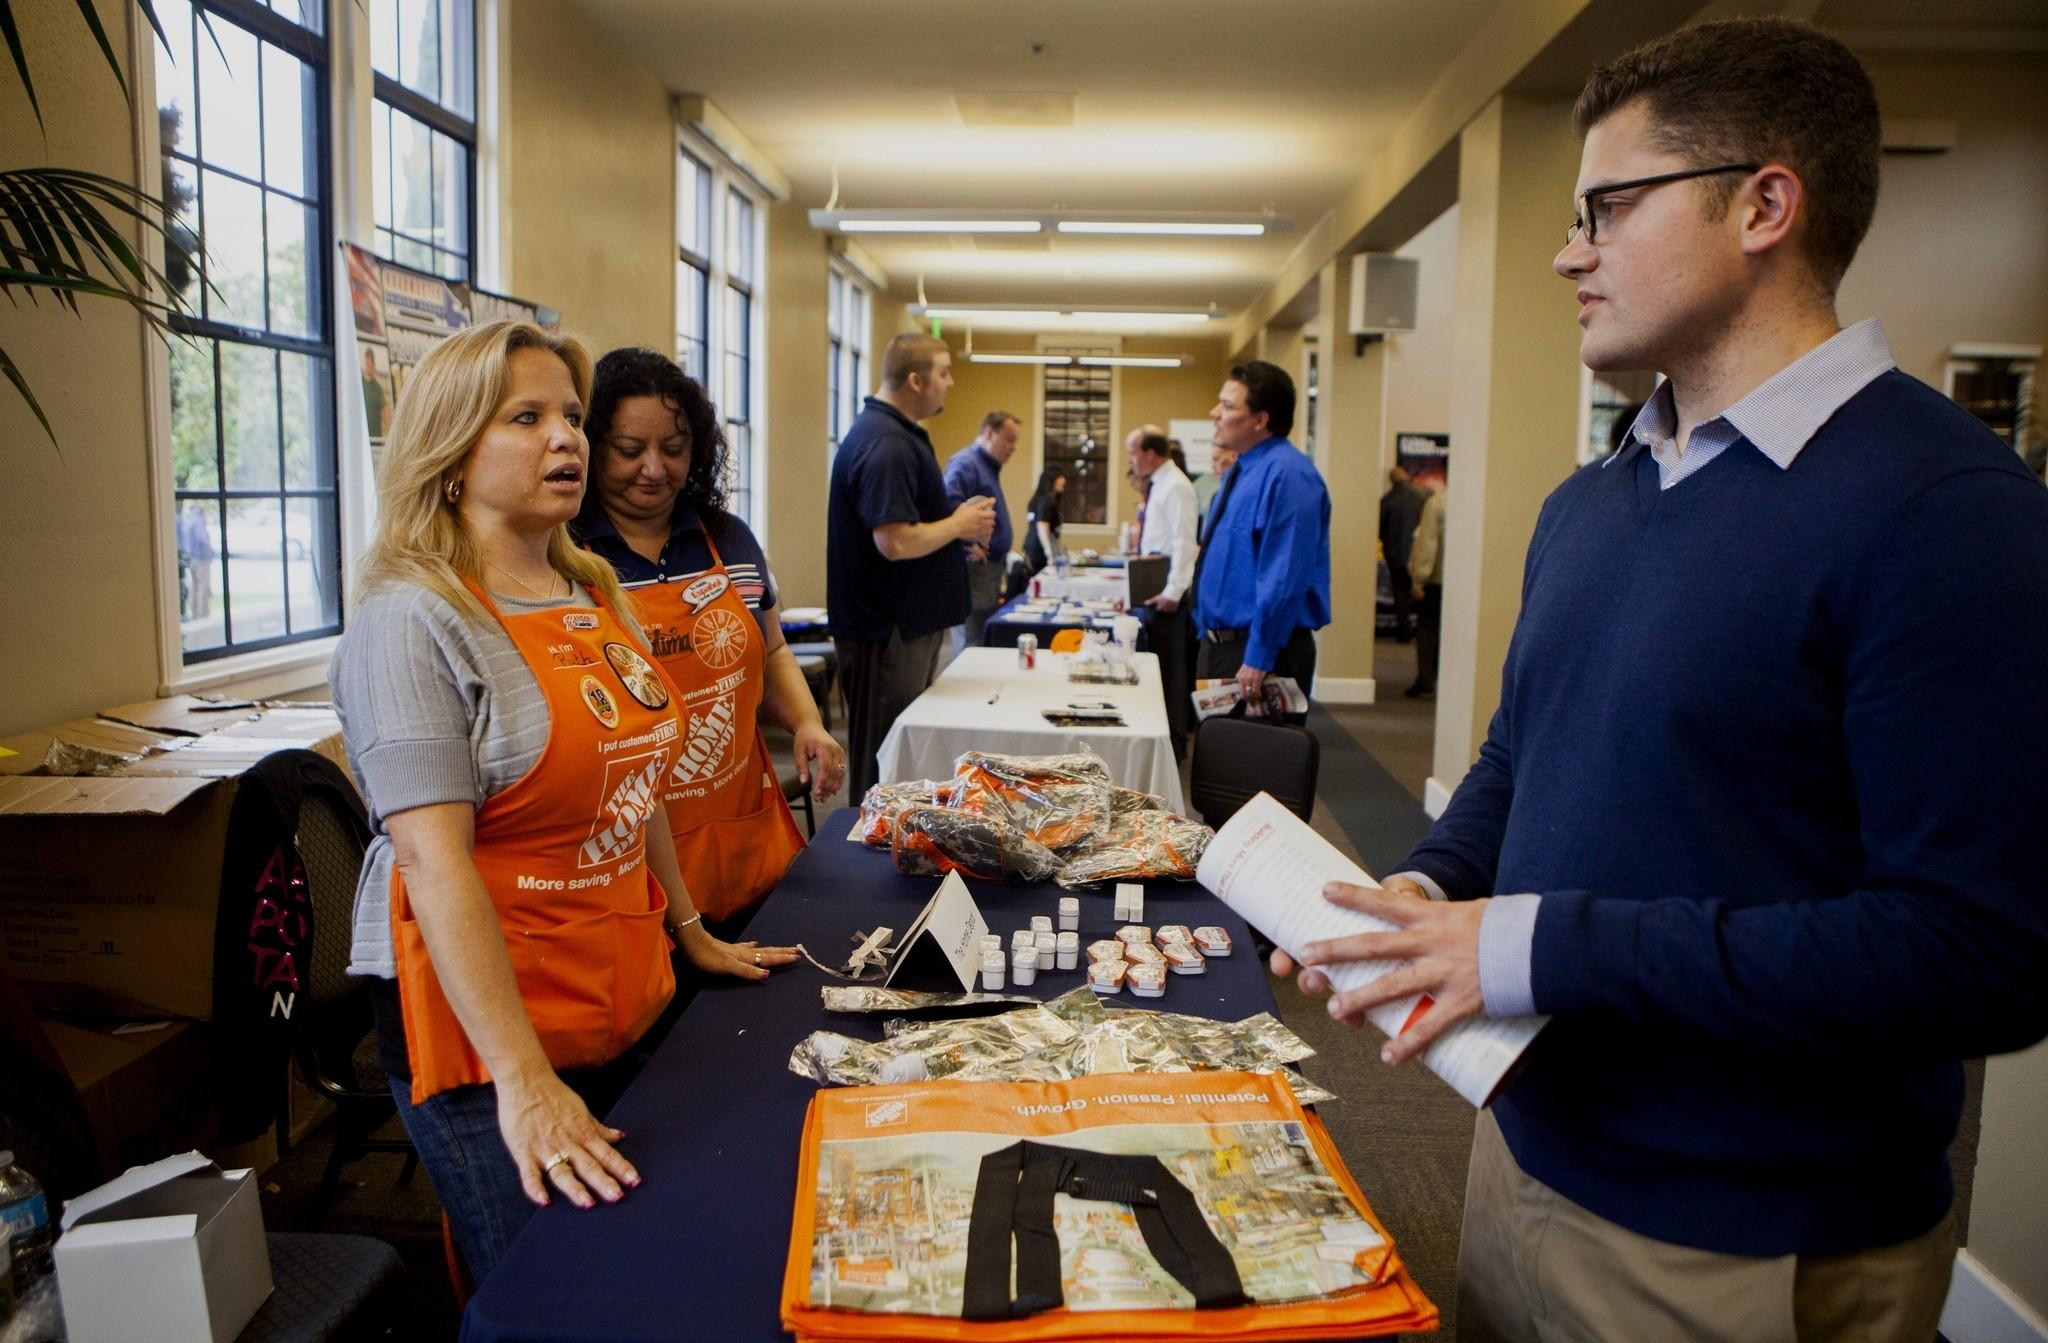 Home Depot Inc. representatives speak with a job seeker at the Recruit Military veterans job fair in San Diego.